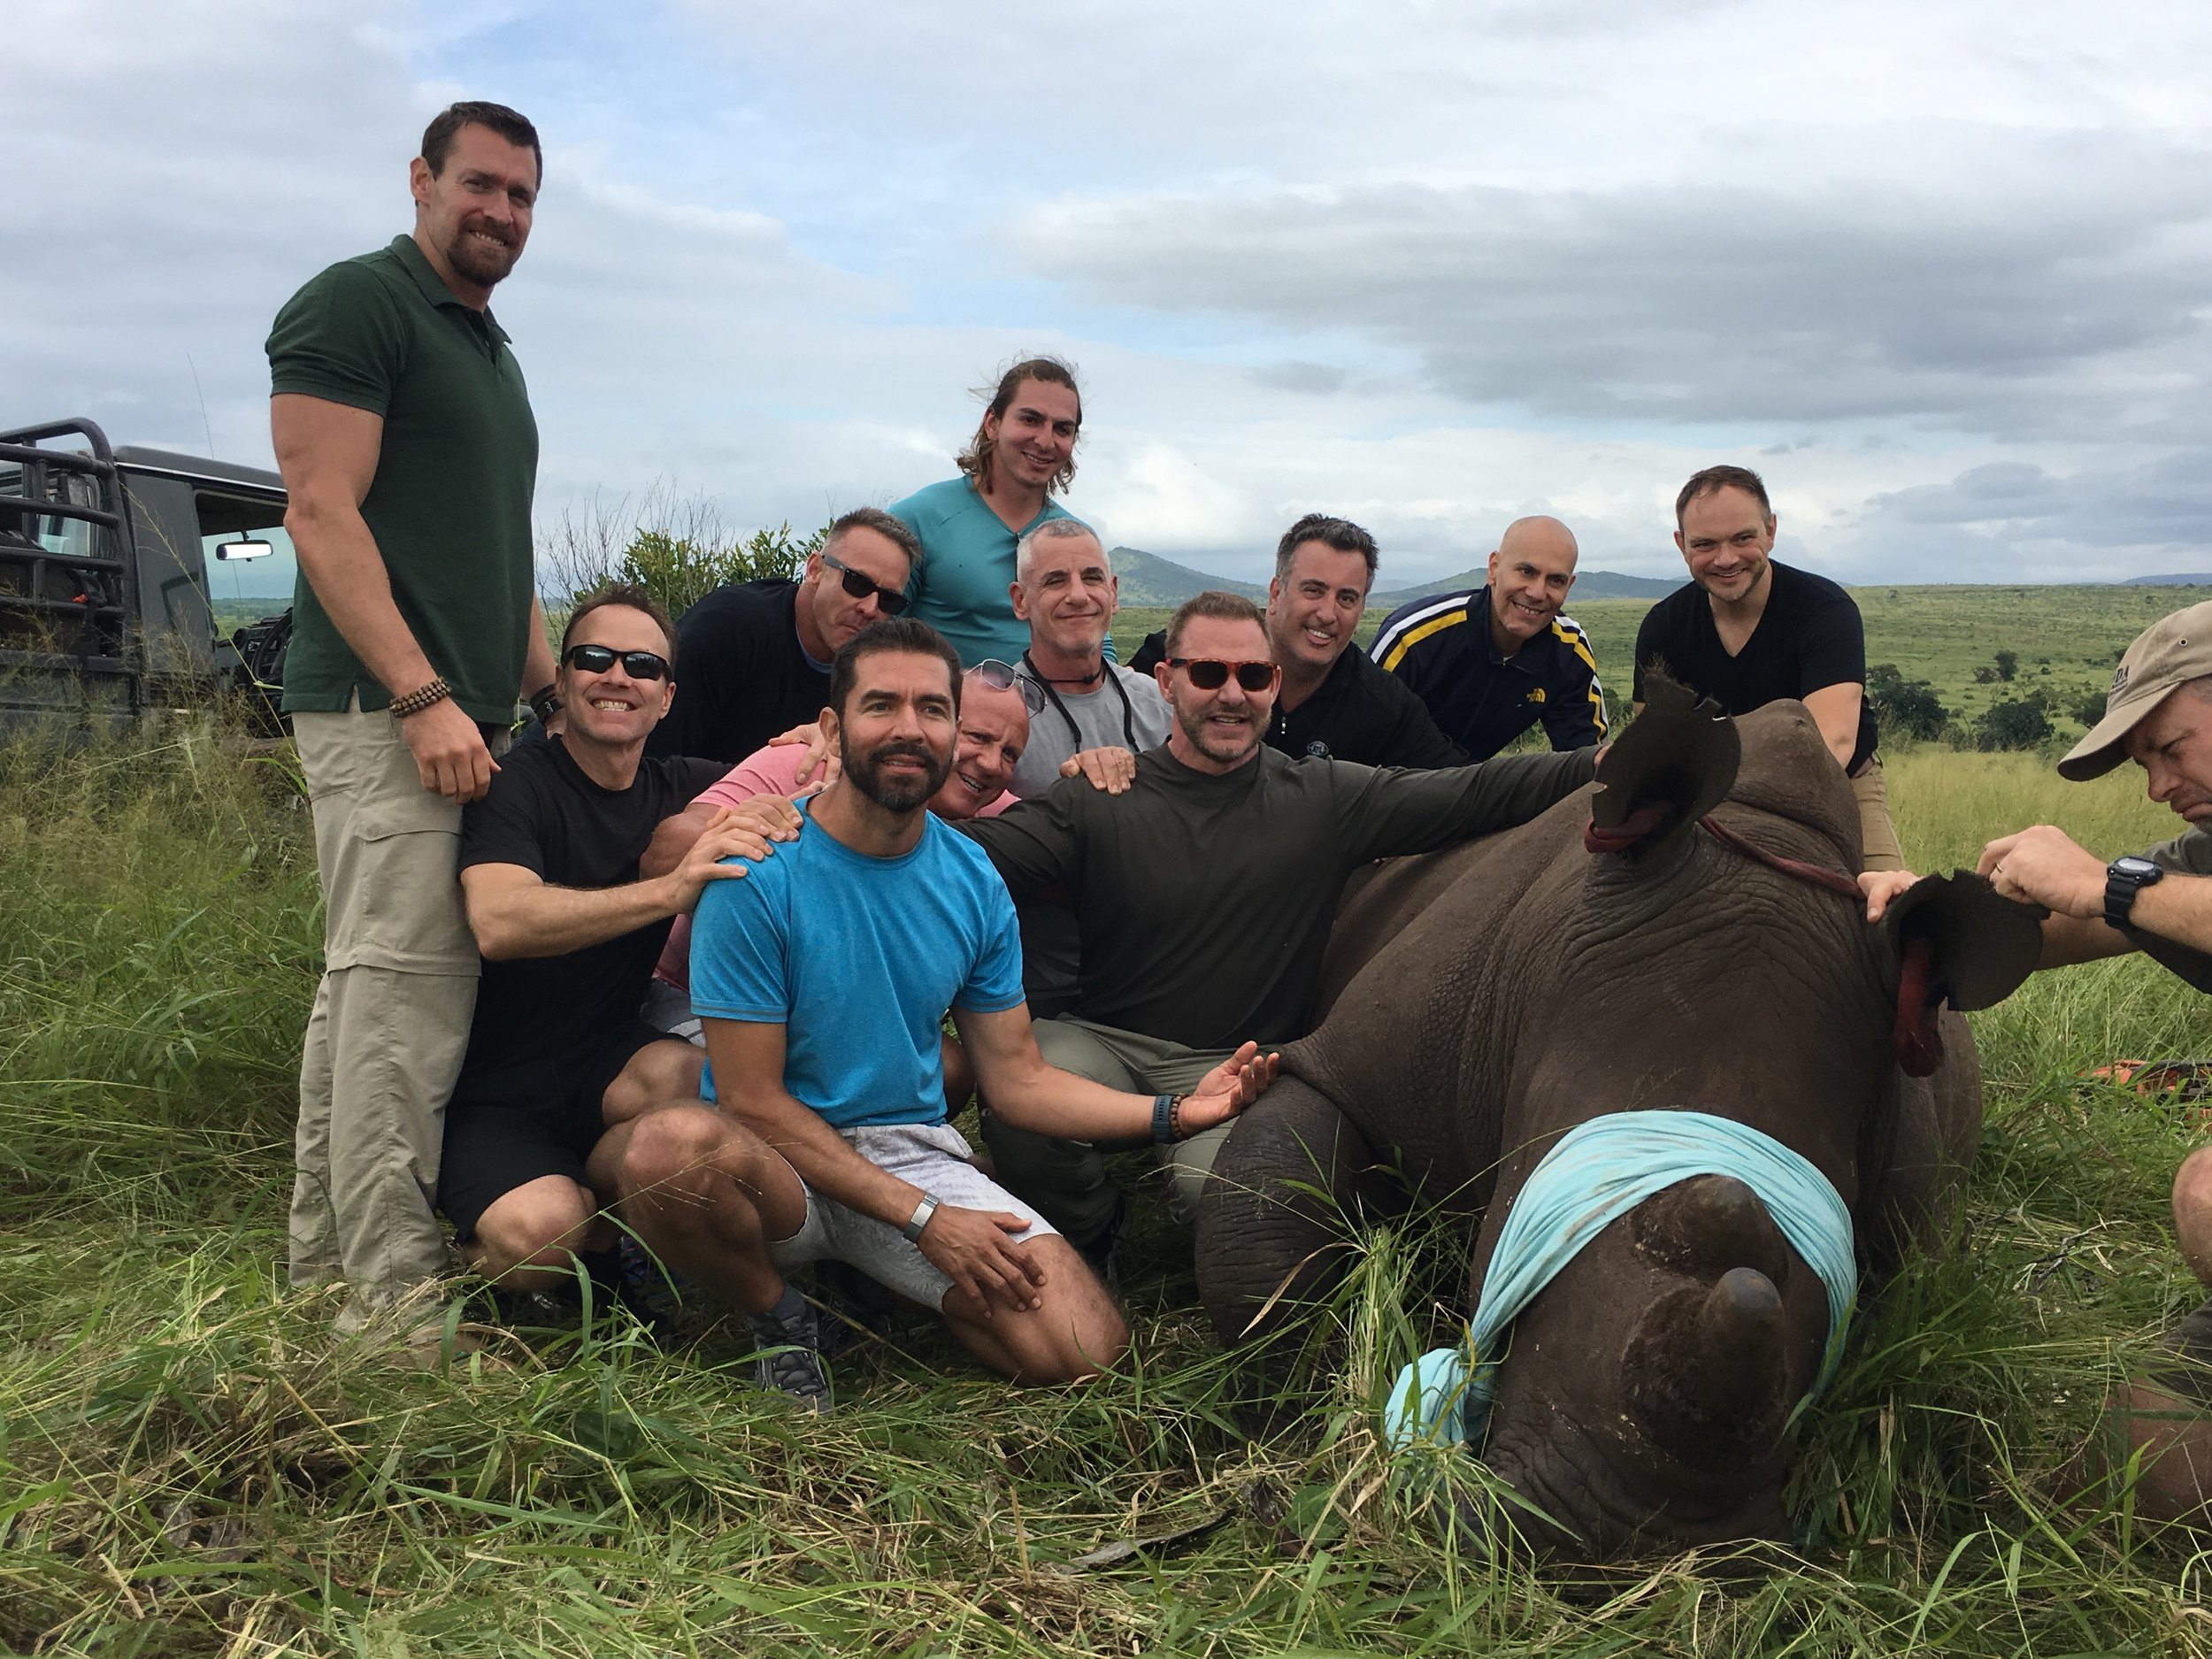 JOIN US - Man Ex will be running privately funded Rhino Project Conservation trips in 2019 for those who want to get